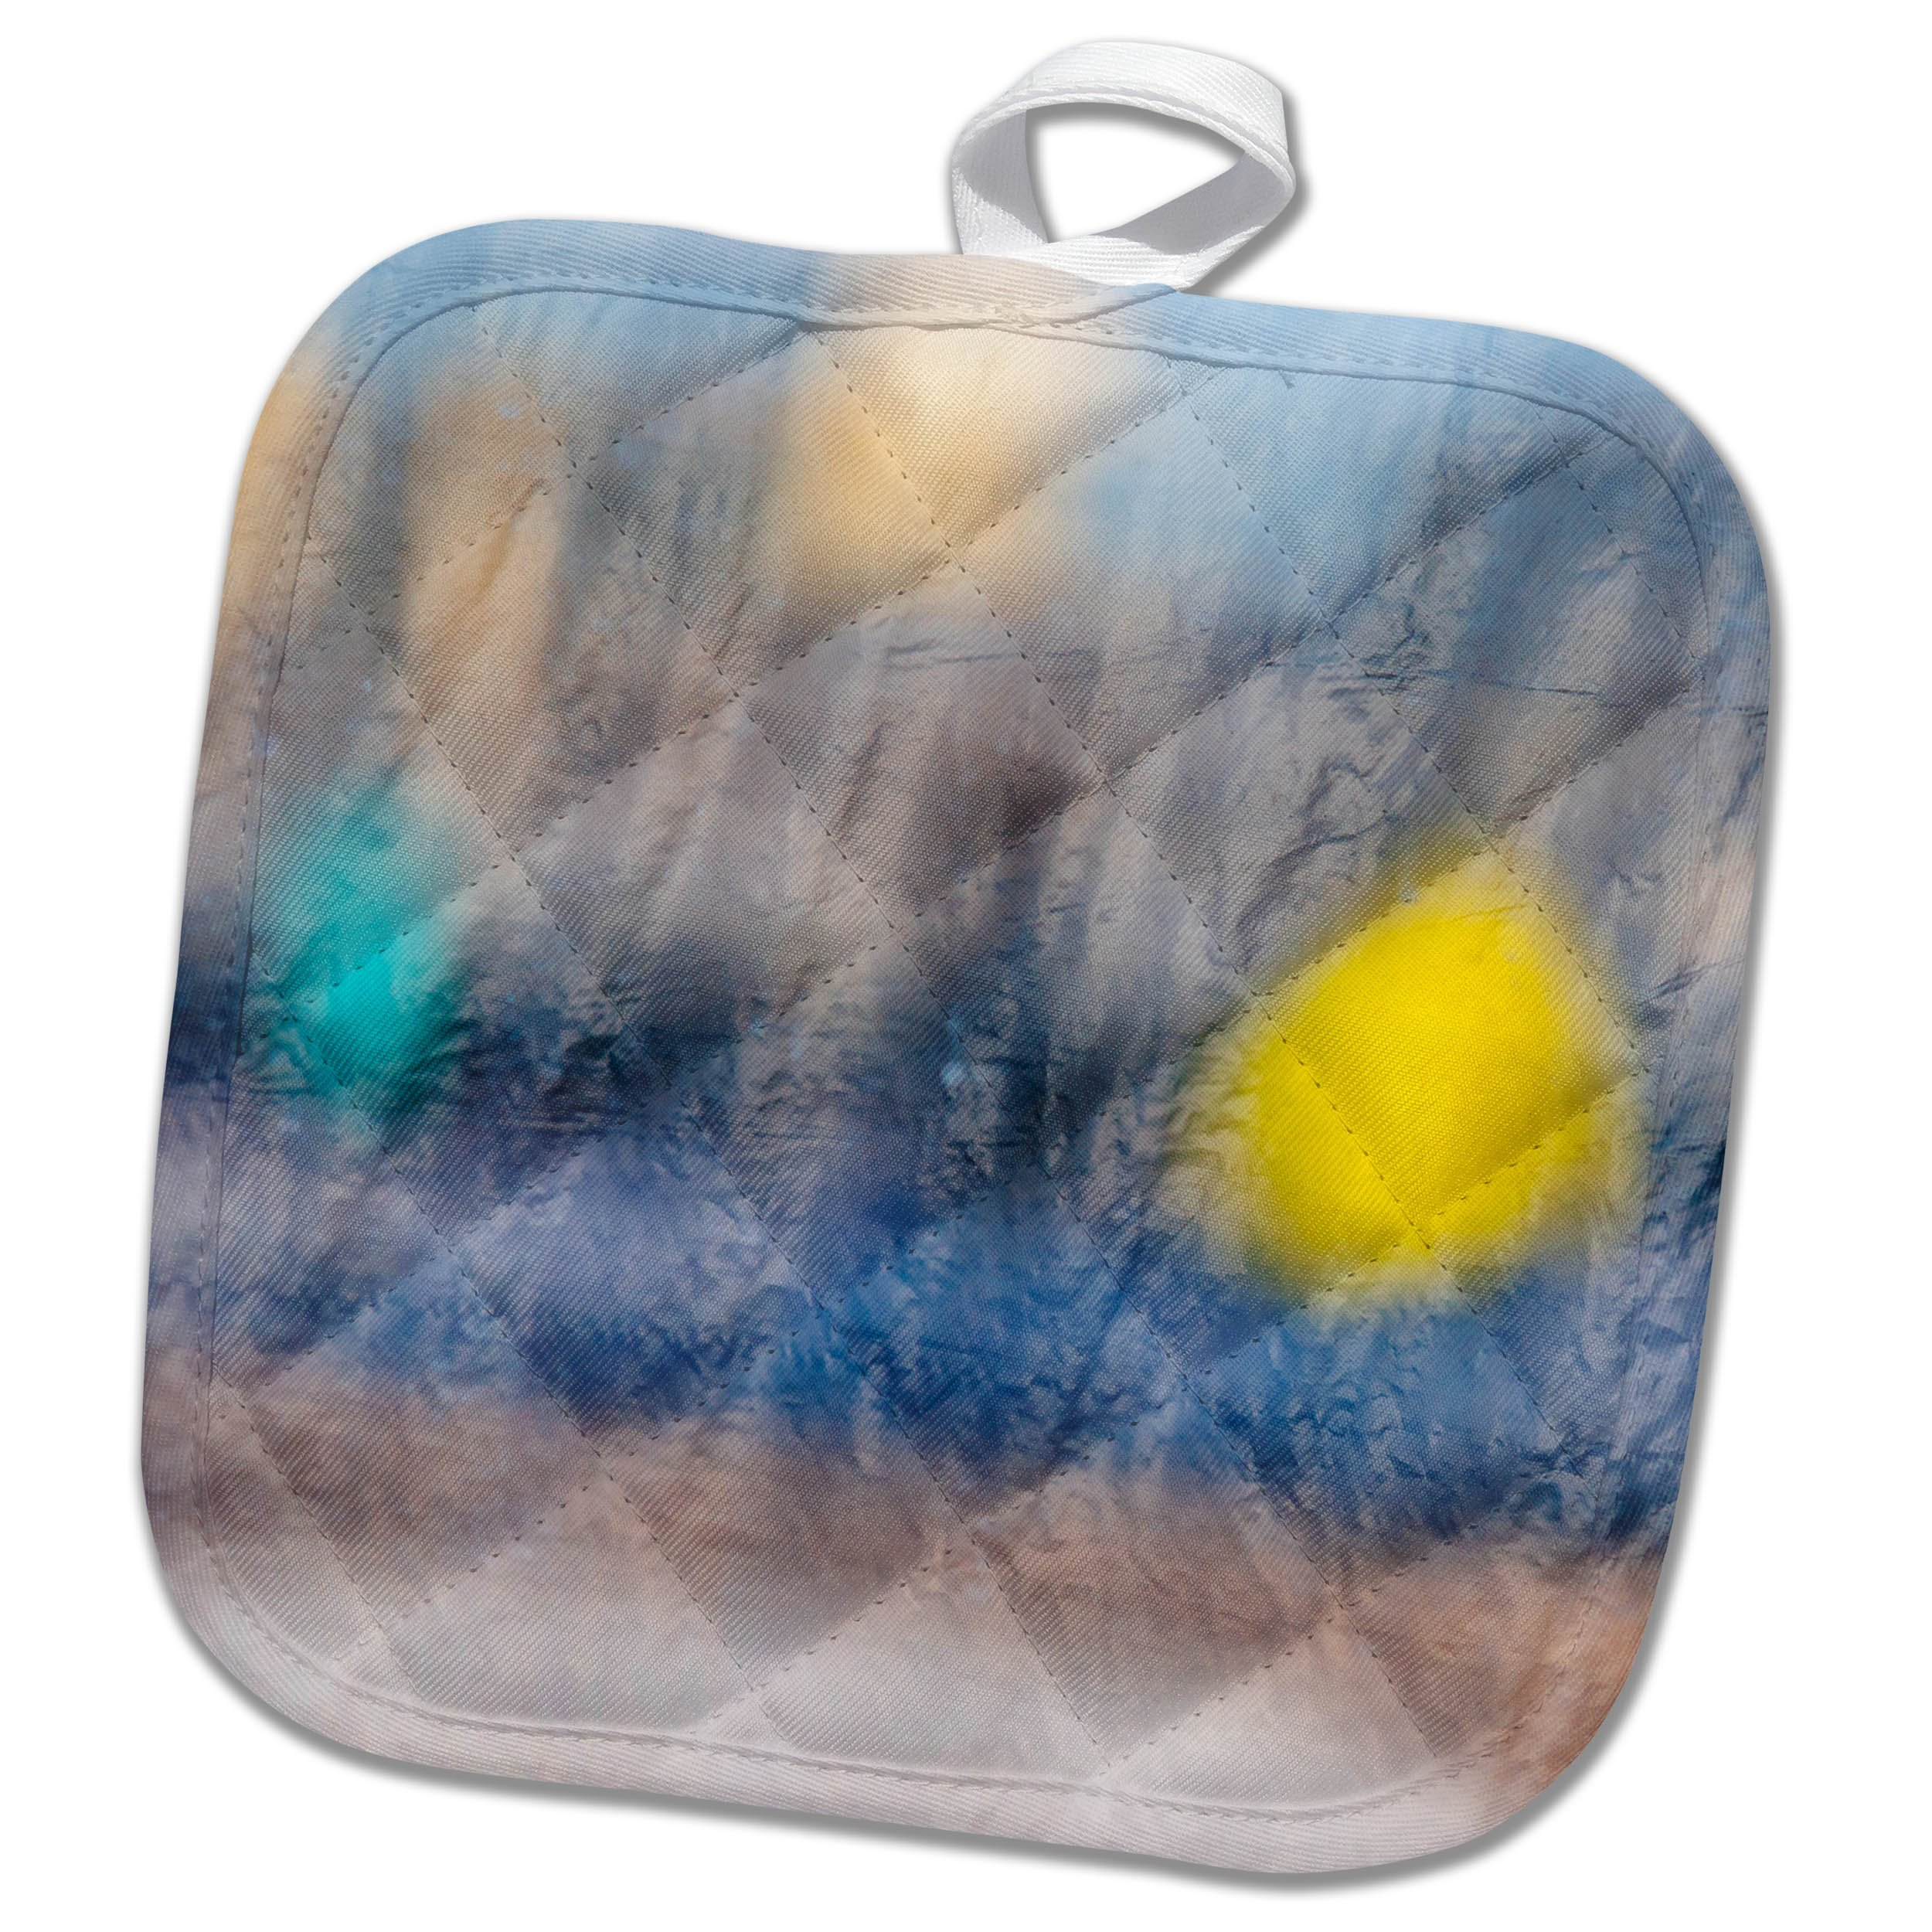 3dRose Alexis Photography - Abstracts - Image of soft blurry colorful reflections in a curtained glass window - 8x8 Potholder (phl_285871_1)